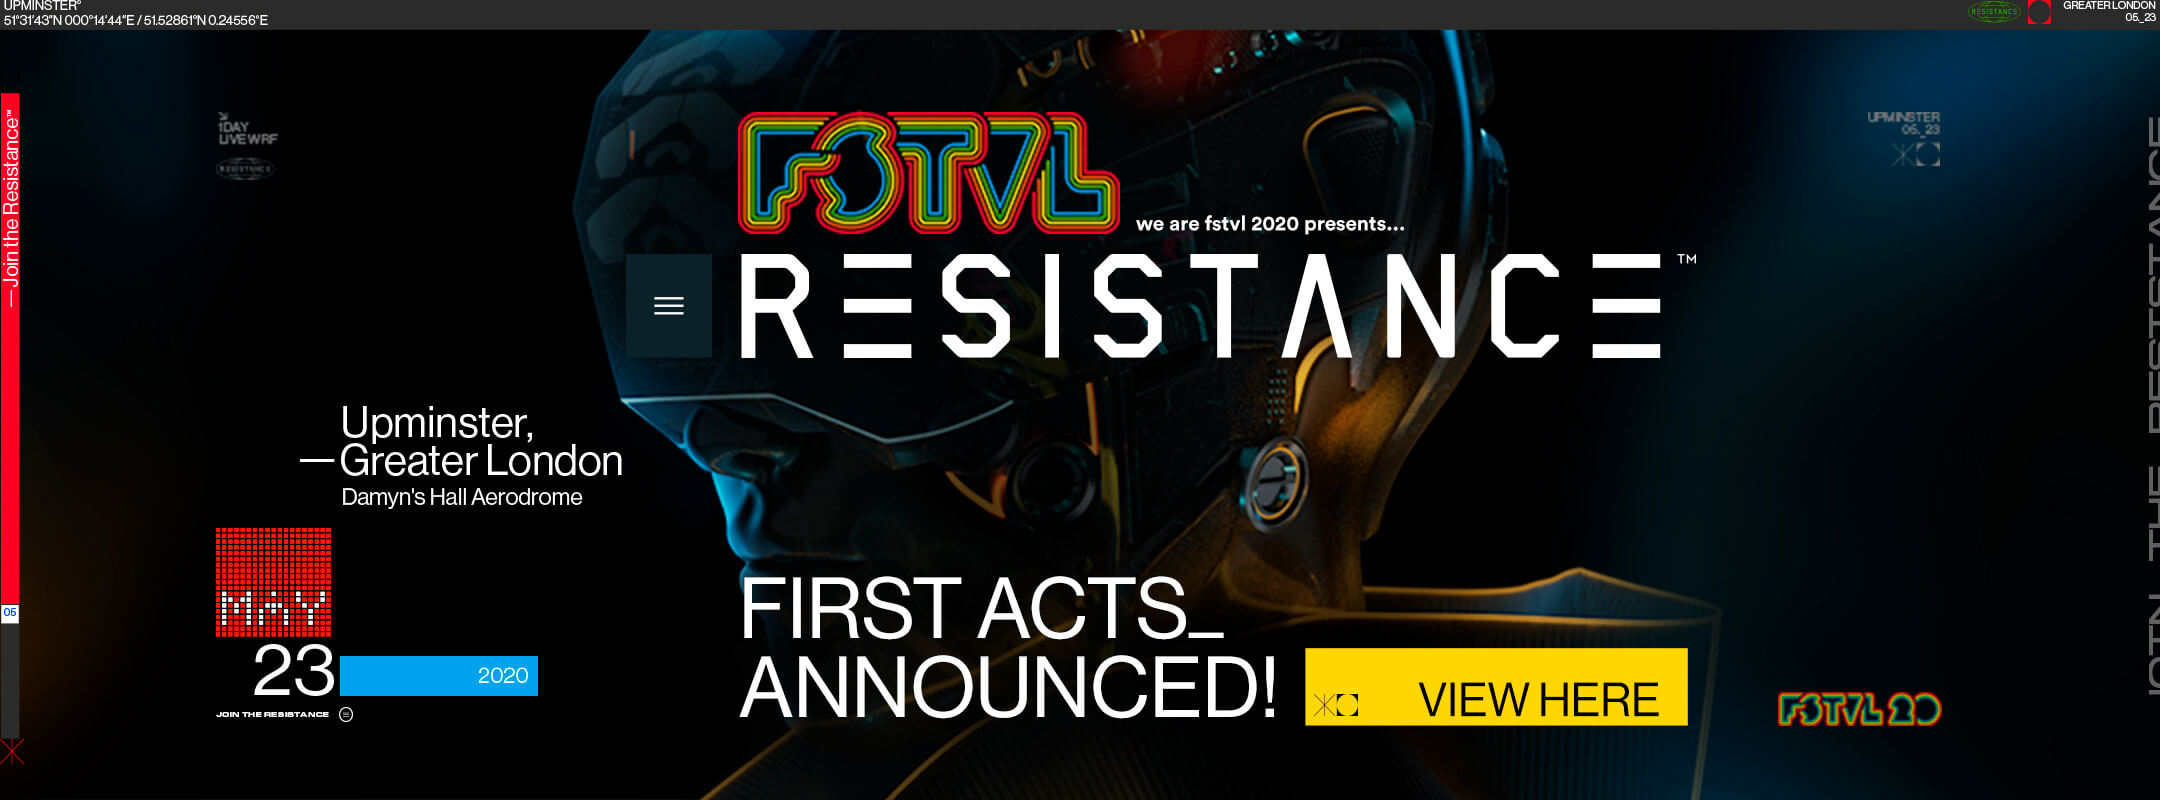 View the First Acts for Resistance We Are FSTVL 2020